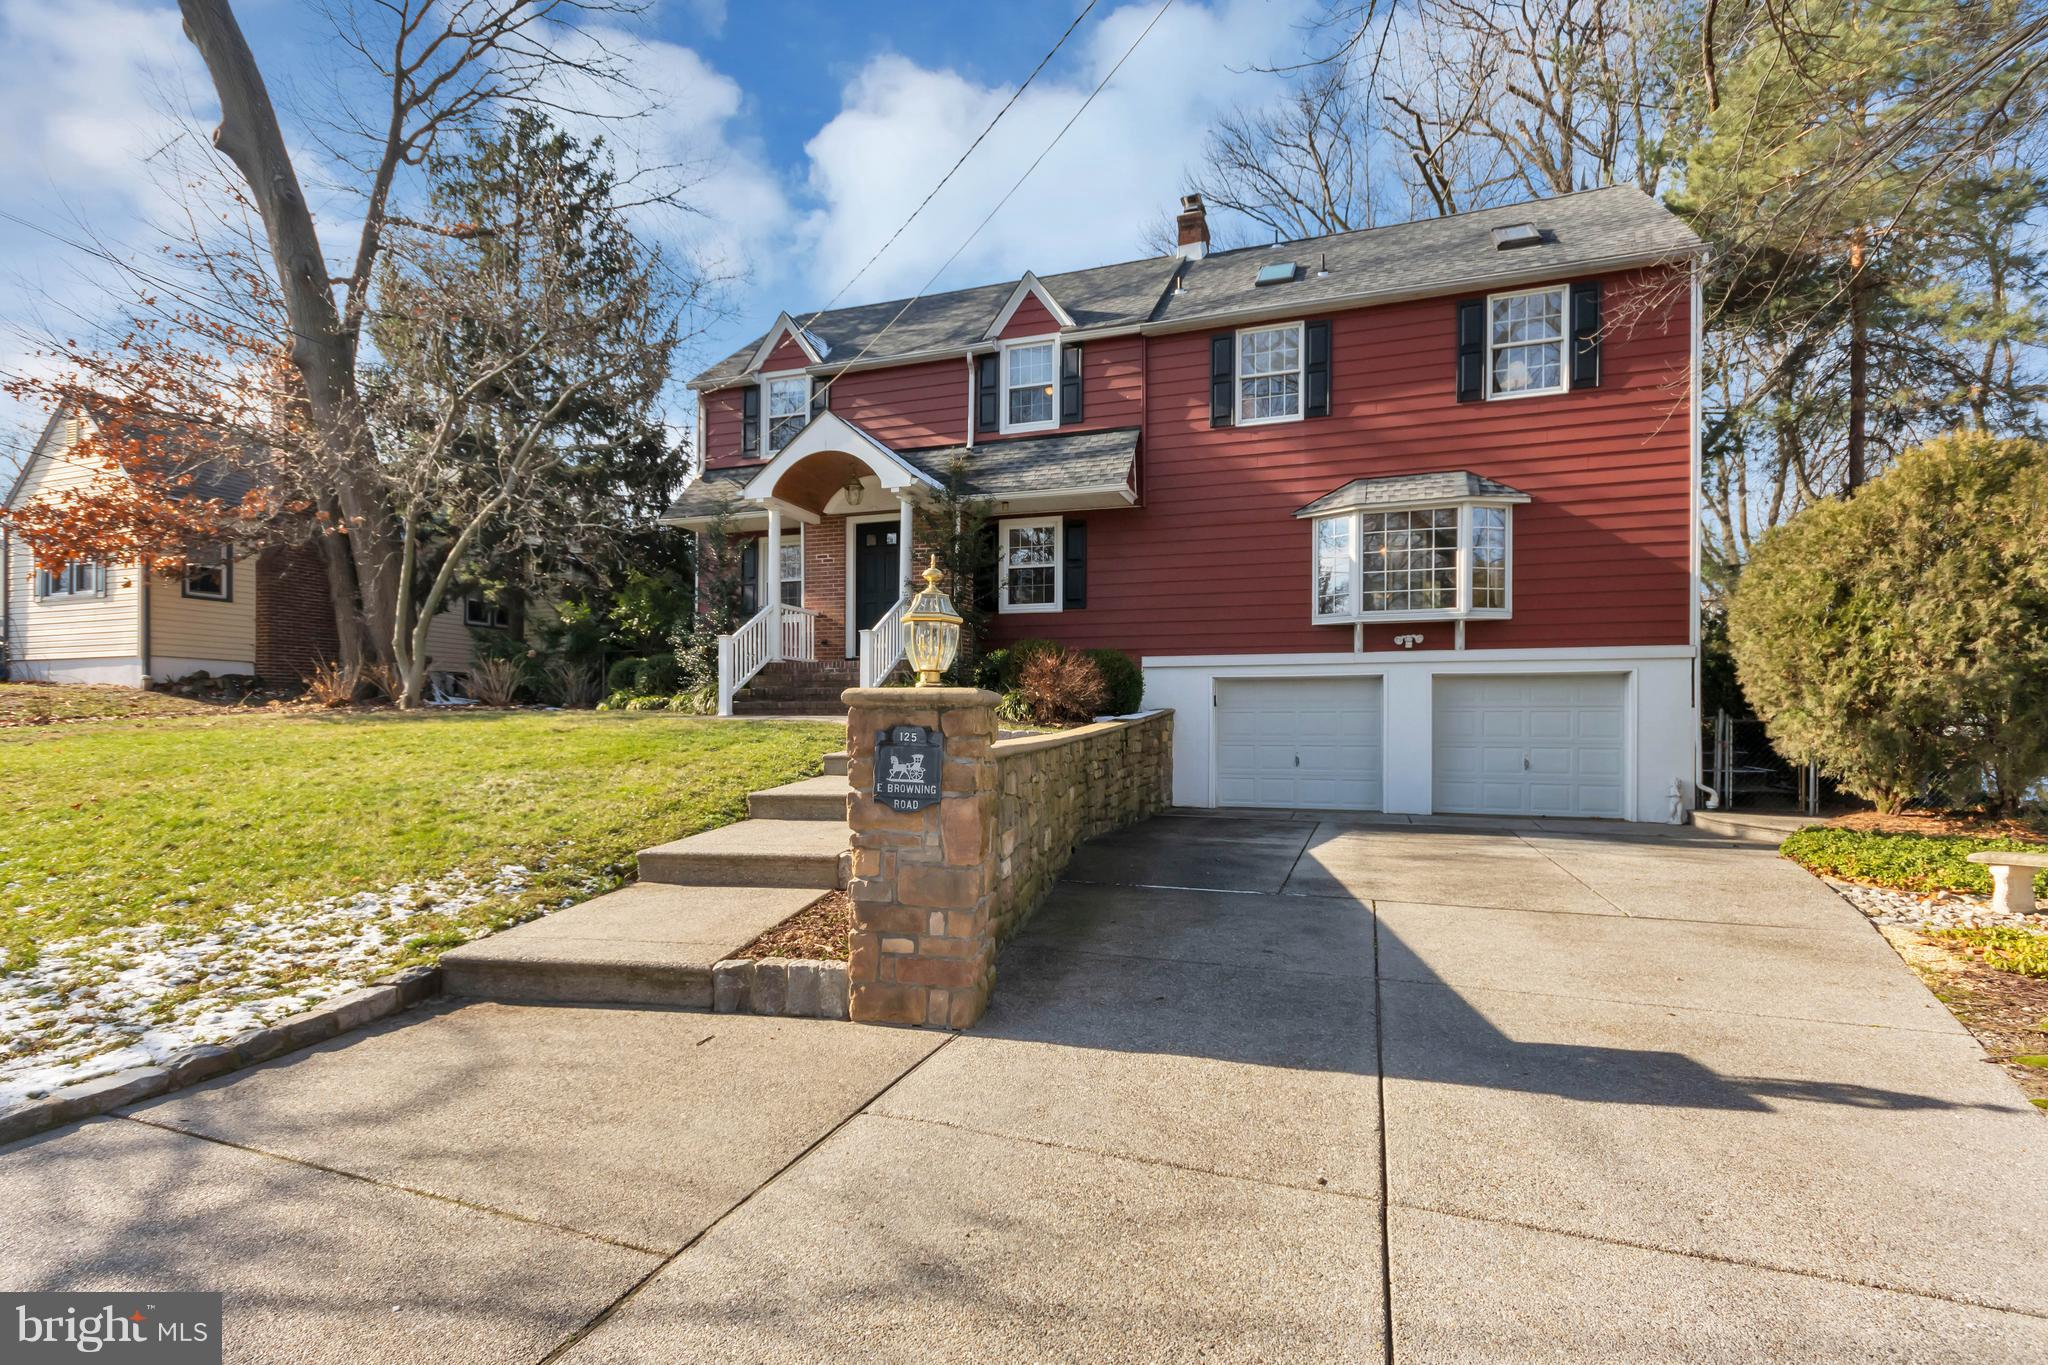 125 E BROWNING, COLLINGSWOOD, NJ 08108